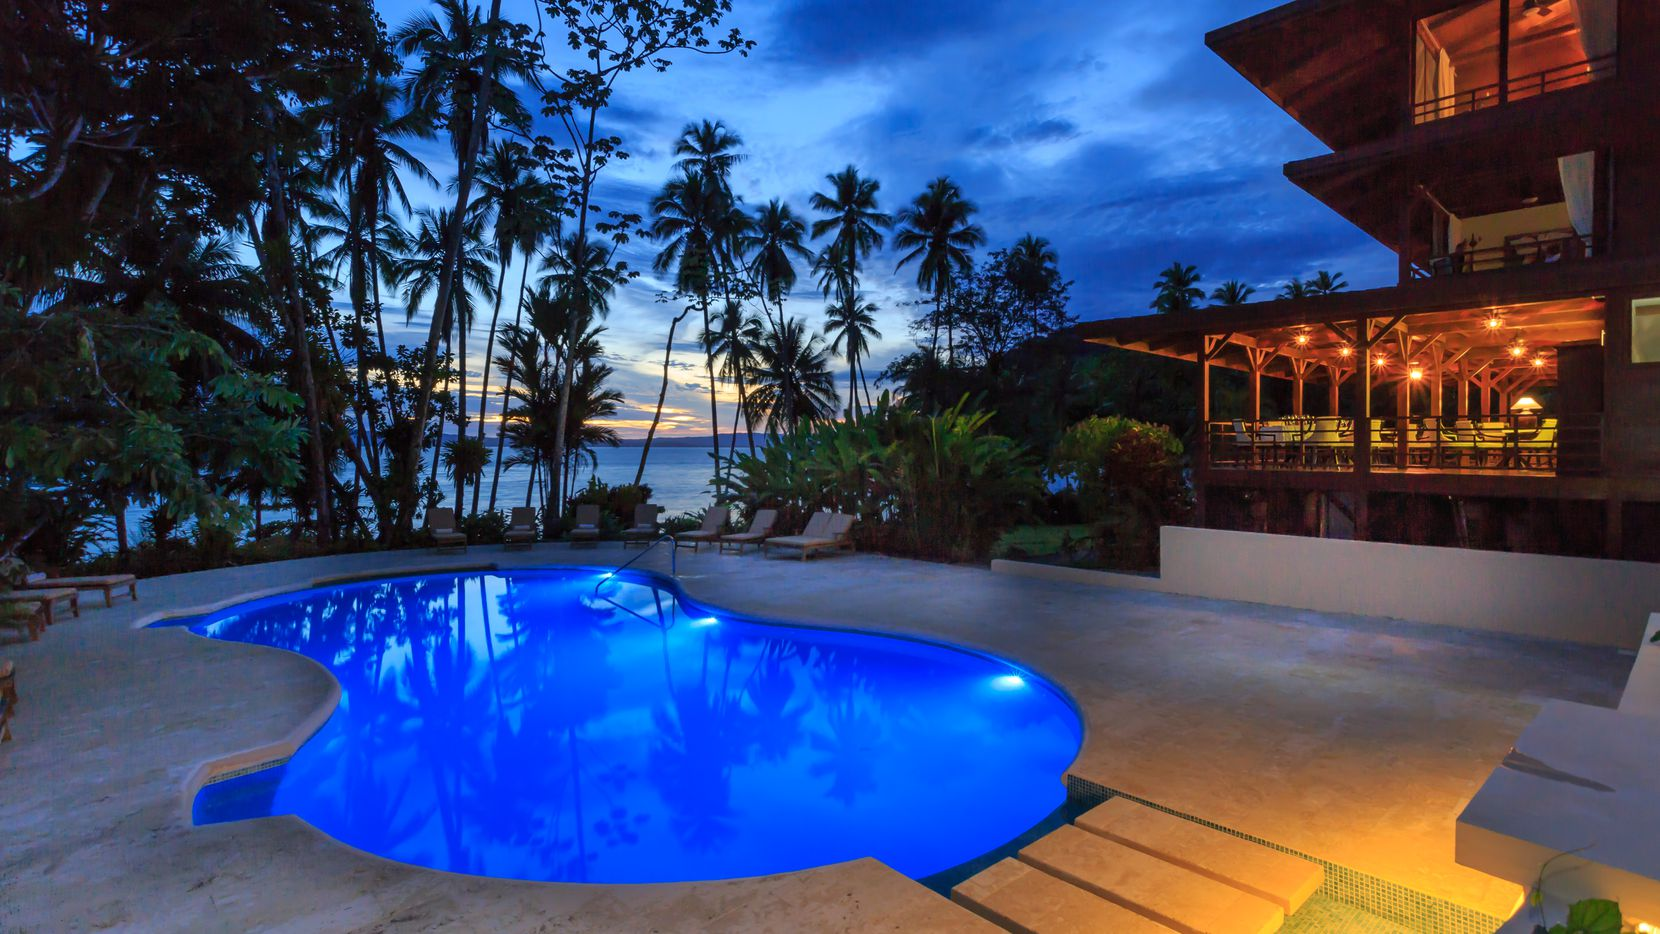 Sustainability and conservation are the watchwords at Playa Cativo Lodge, a gem on Costa Rica's Osa Peninsula.